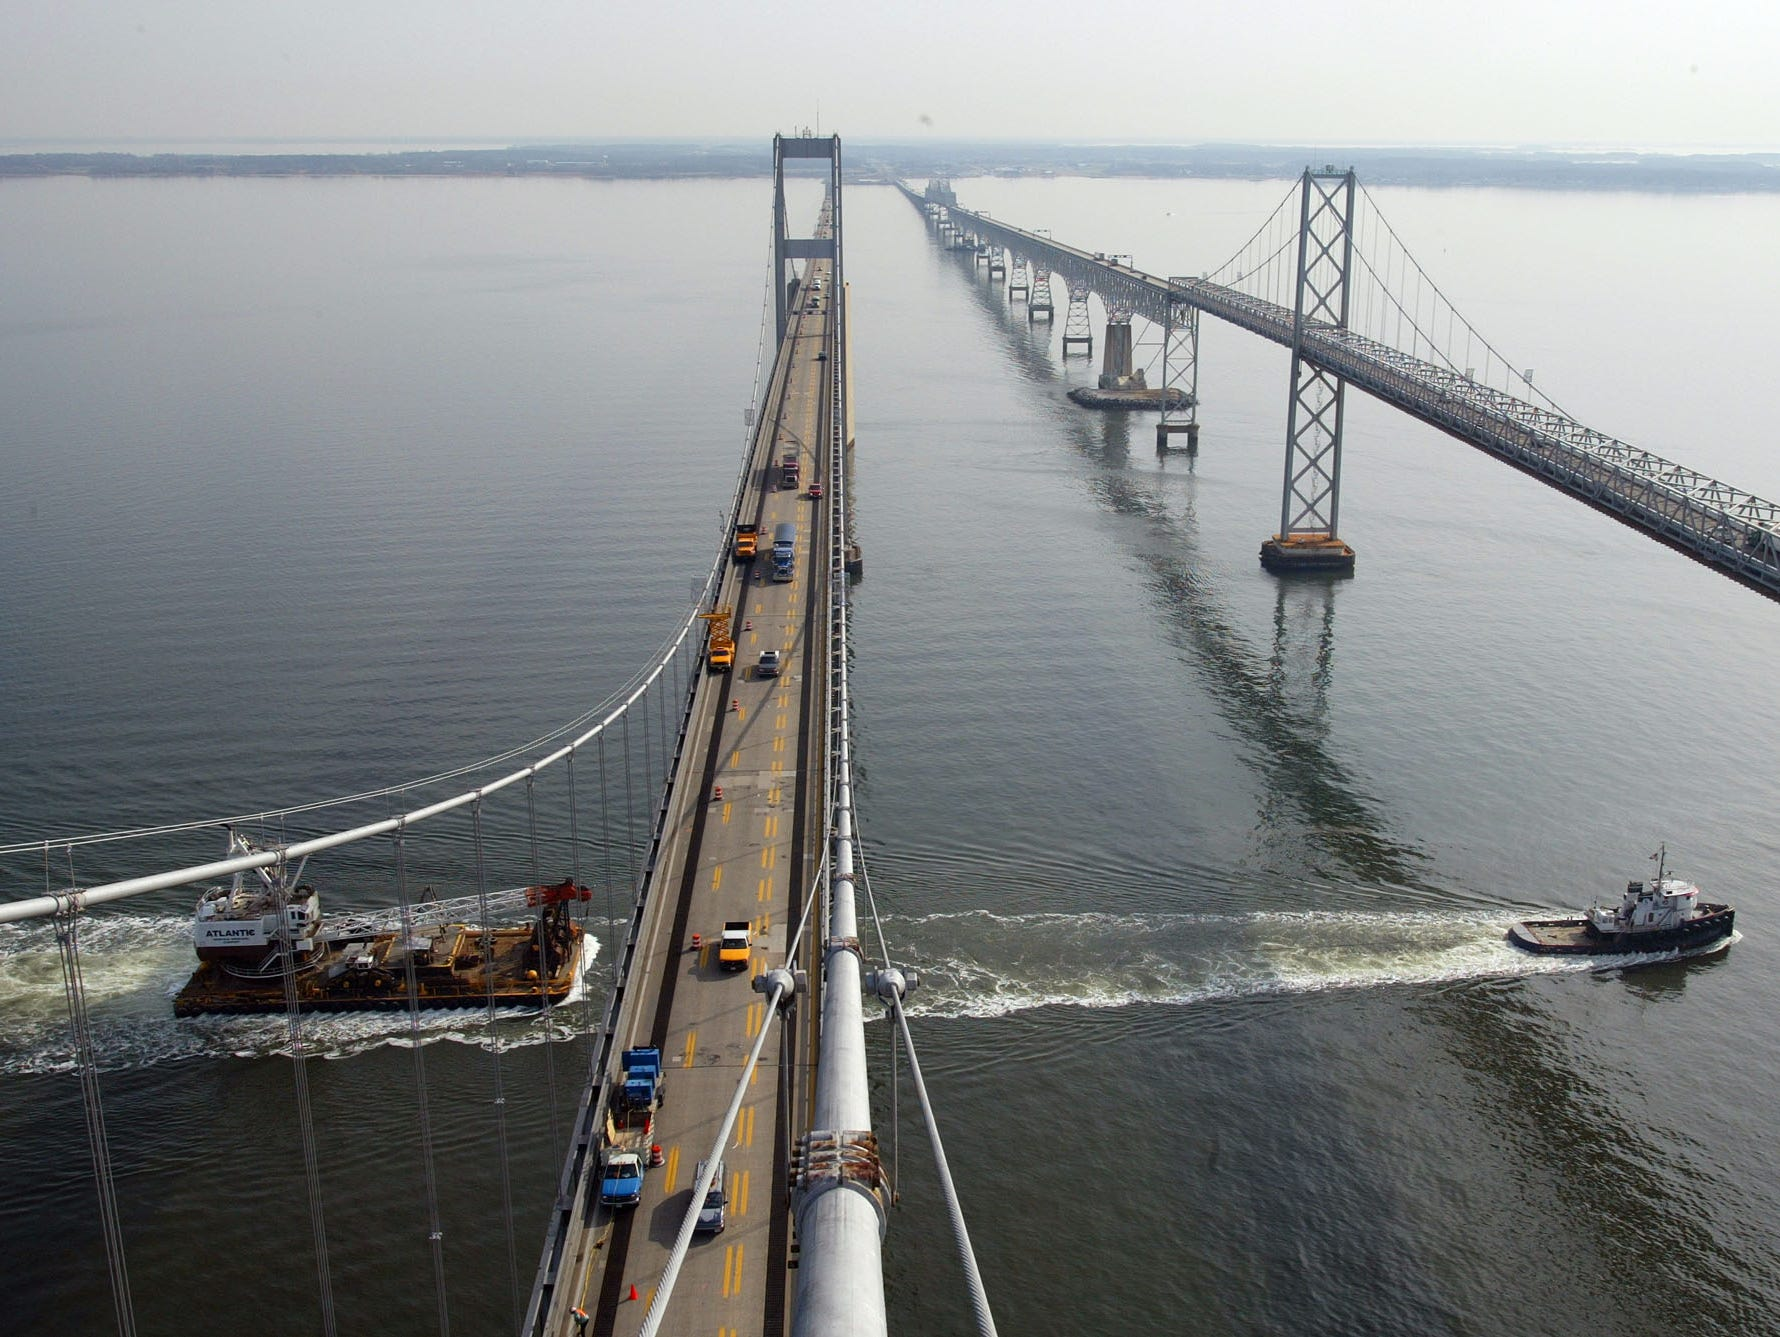 ** FILE ** In this view, looking east from a tower of the westbound span of the Chesapeake Bay Bridge, a tugboat tows a barge south on the Chesapeake Bay on Jan. 30, 2002.   When it first opened to traffic on July 30, 1952, what's popularly known today as the Chesapeake Bay Bridge was the third-longest in the world. In 50 years, the architectural marvel accelerated trade, opened new markets to farmers and brought Ocean City beaches hours closer to tourists, single-handedly changing the complexion of commerce in Maryland.  The eastbound span of the bridge, right, was completed in 1952, while the westbound span was completed in 1973. (AP Photo/Roberto Borea) ORG XMIT: BA106